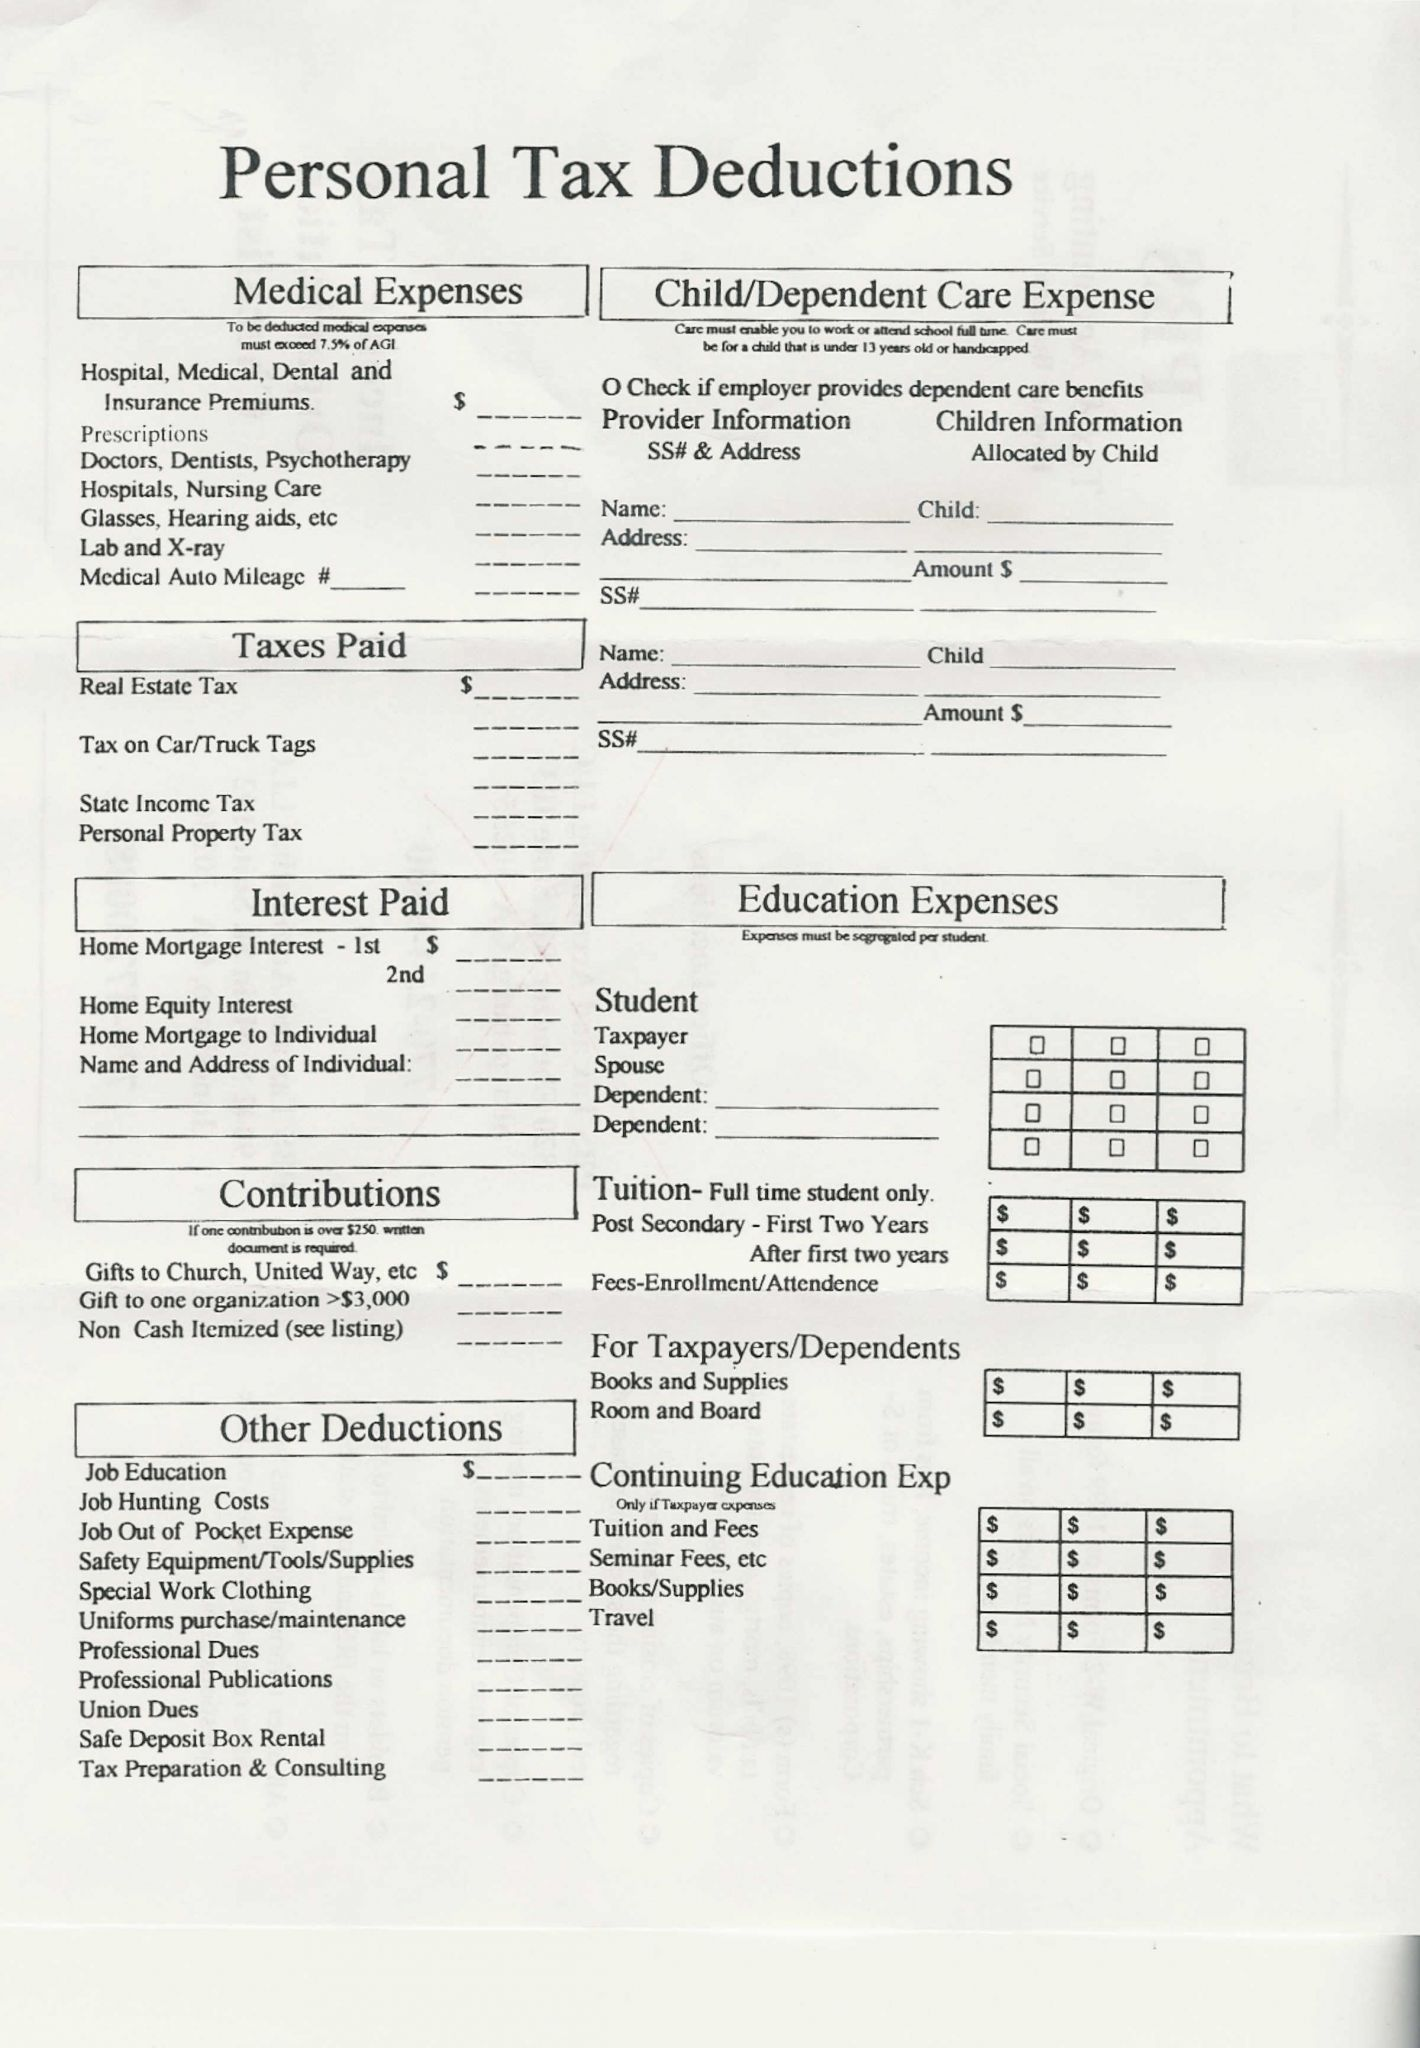 Police Officer Tax Deductions Worksheet